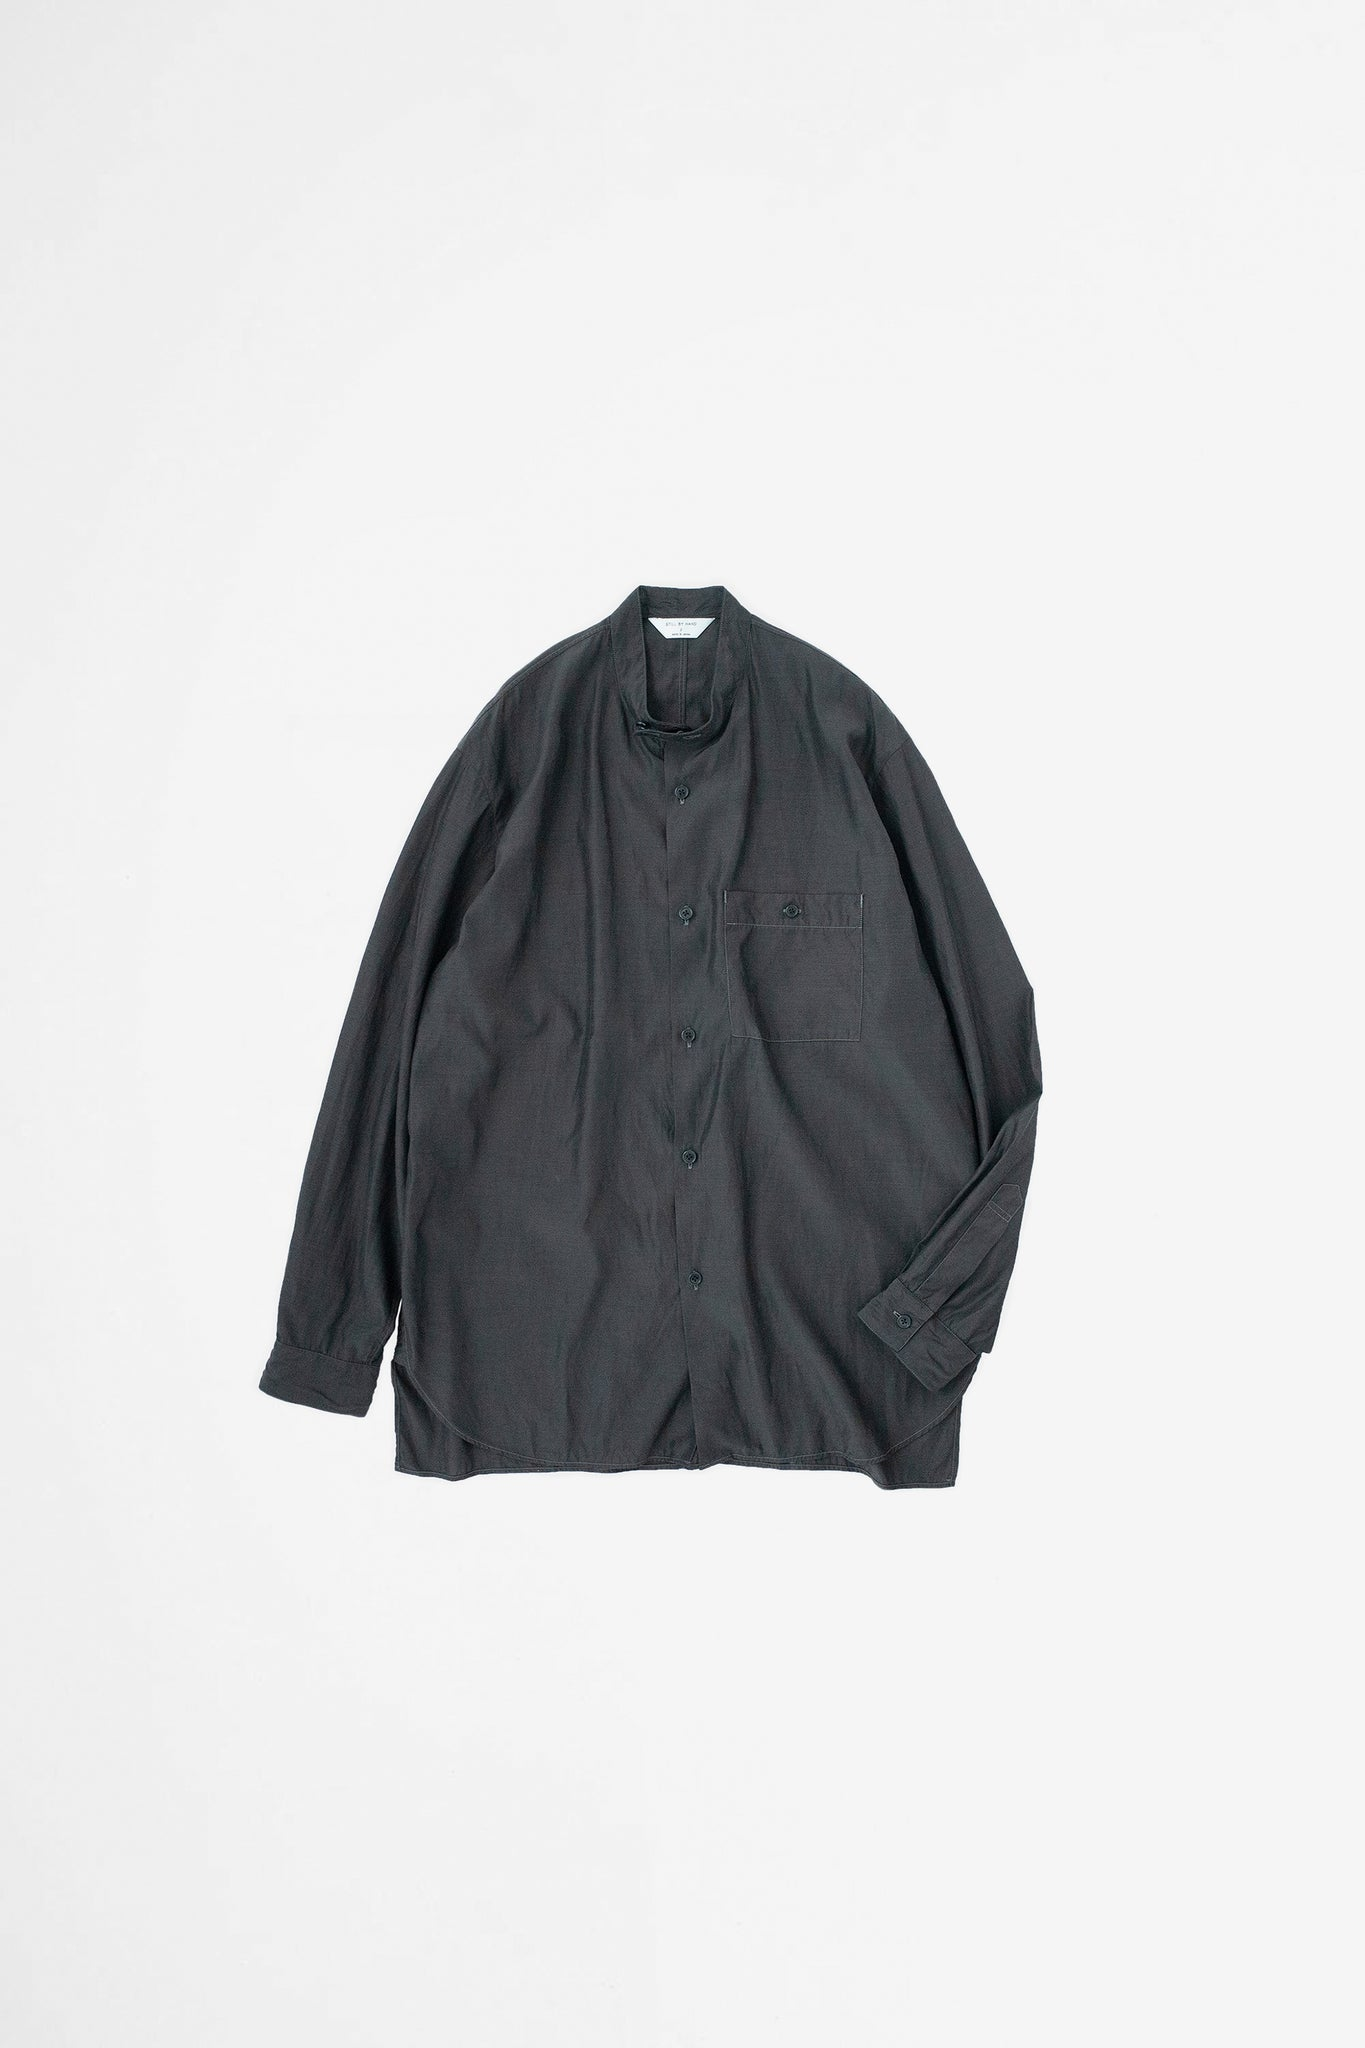 Band collar shirt ink black